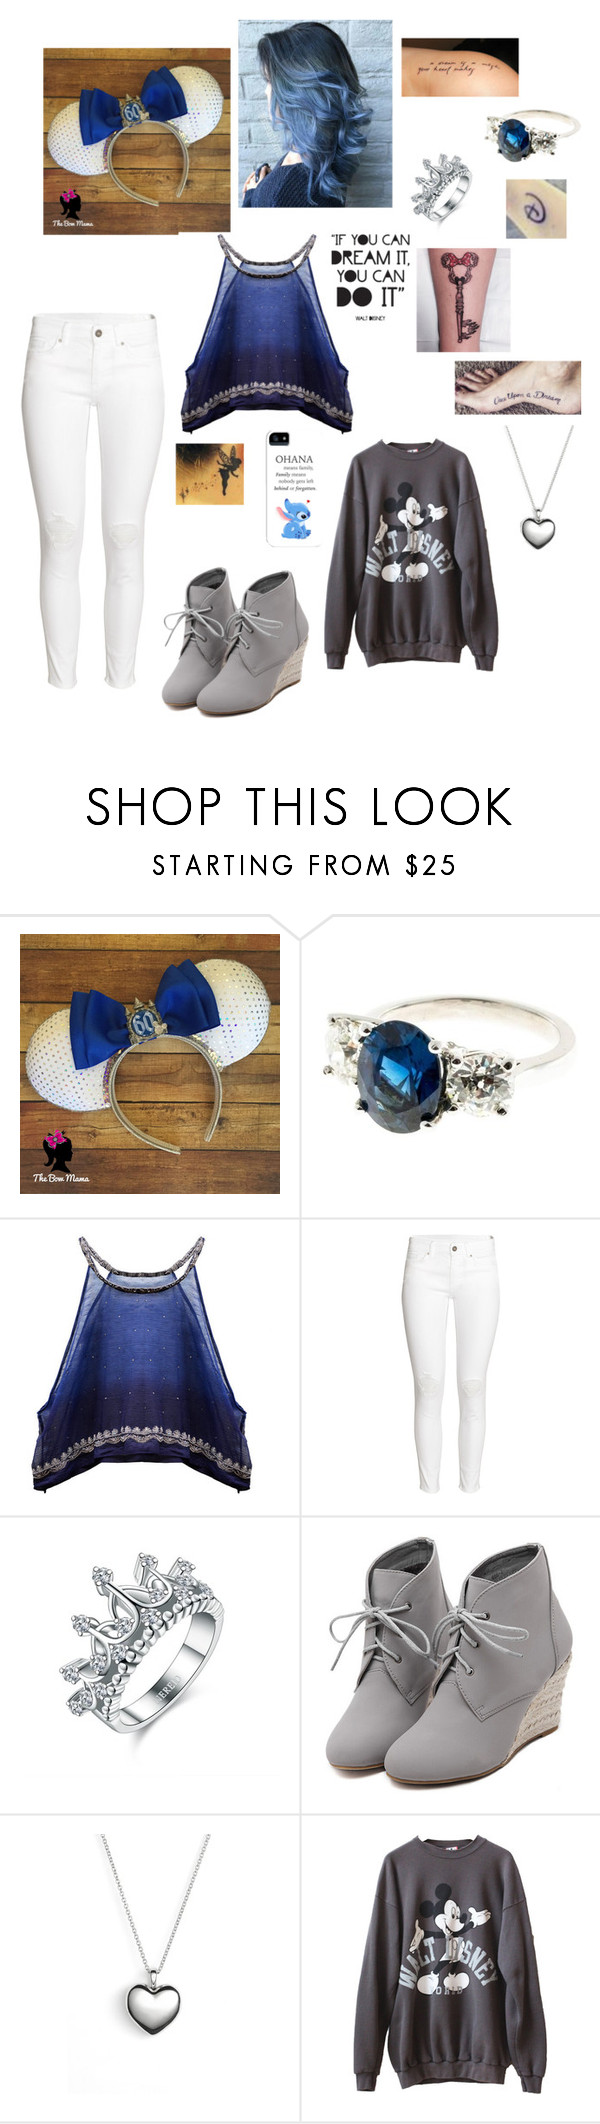 """Mickey Mouse Ears (60th Anniversary, Casual)"" by hannahc1133 ❤ liked on Polyvore featuring H&M, Disney, WithChic and Pandora"